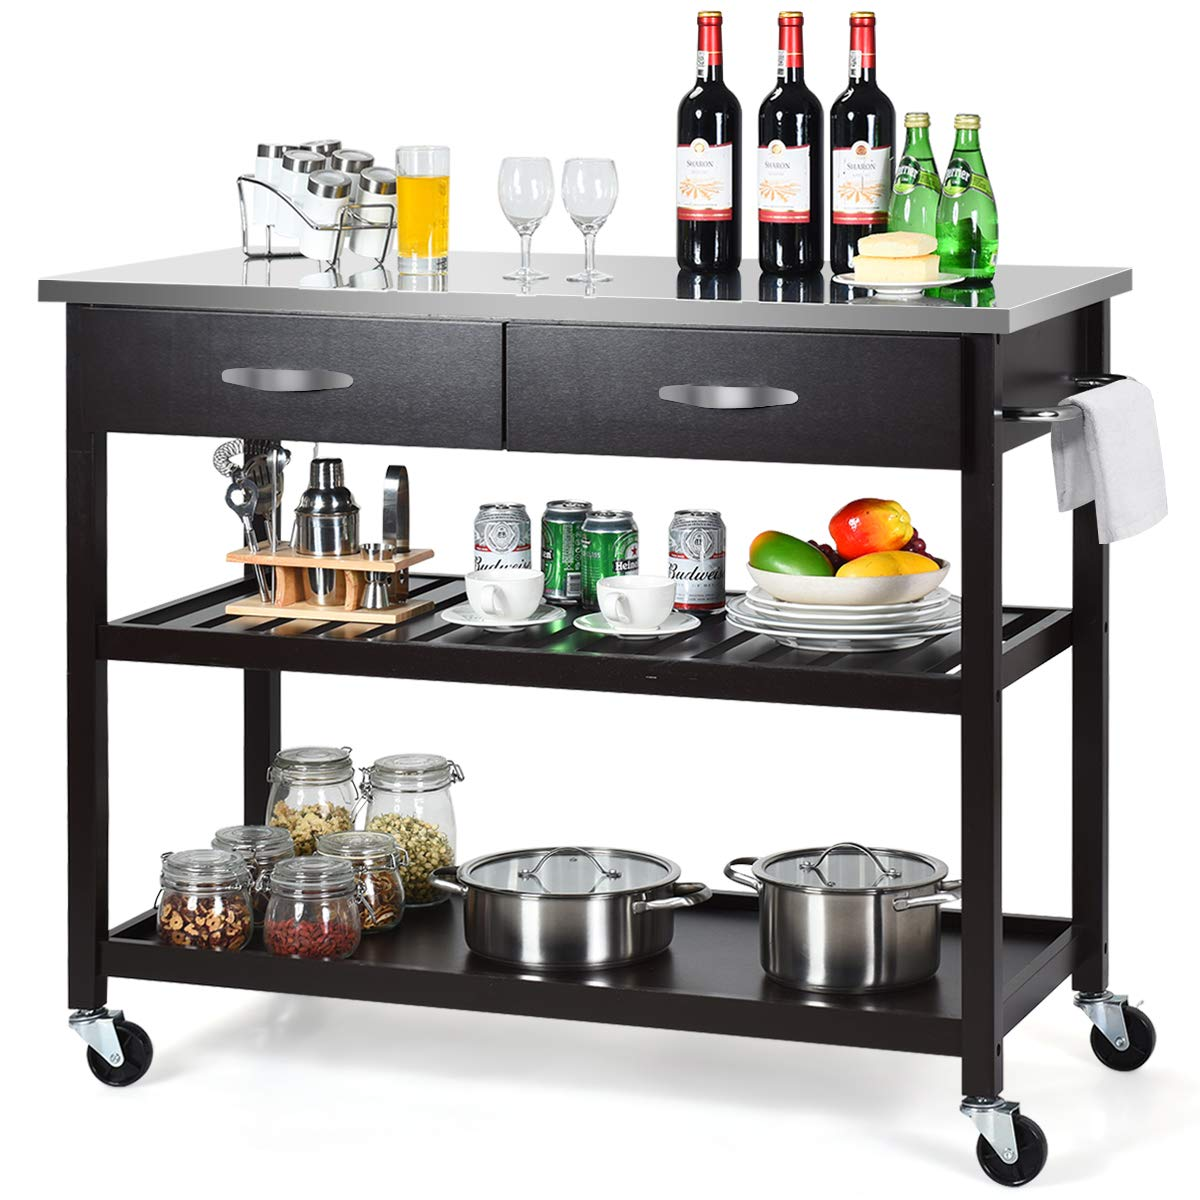 Giantex Kitchen Trolley Cart Rolling Island Cart Serving Cart Large Storage with Stainless Steel Countertop, Lockable Wheels, 2 Drawers and Shelf Utility Cart for Home and Restaurant (Black) by Giantex